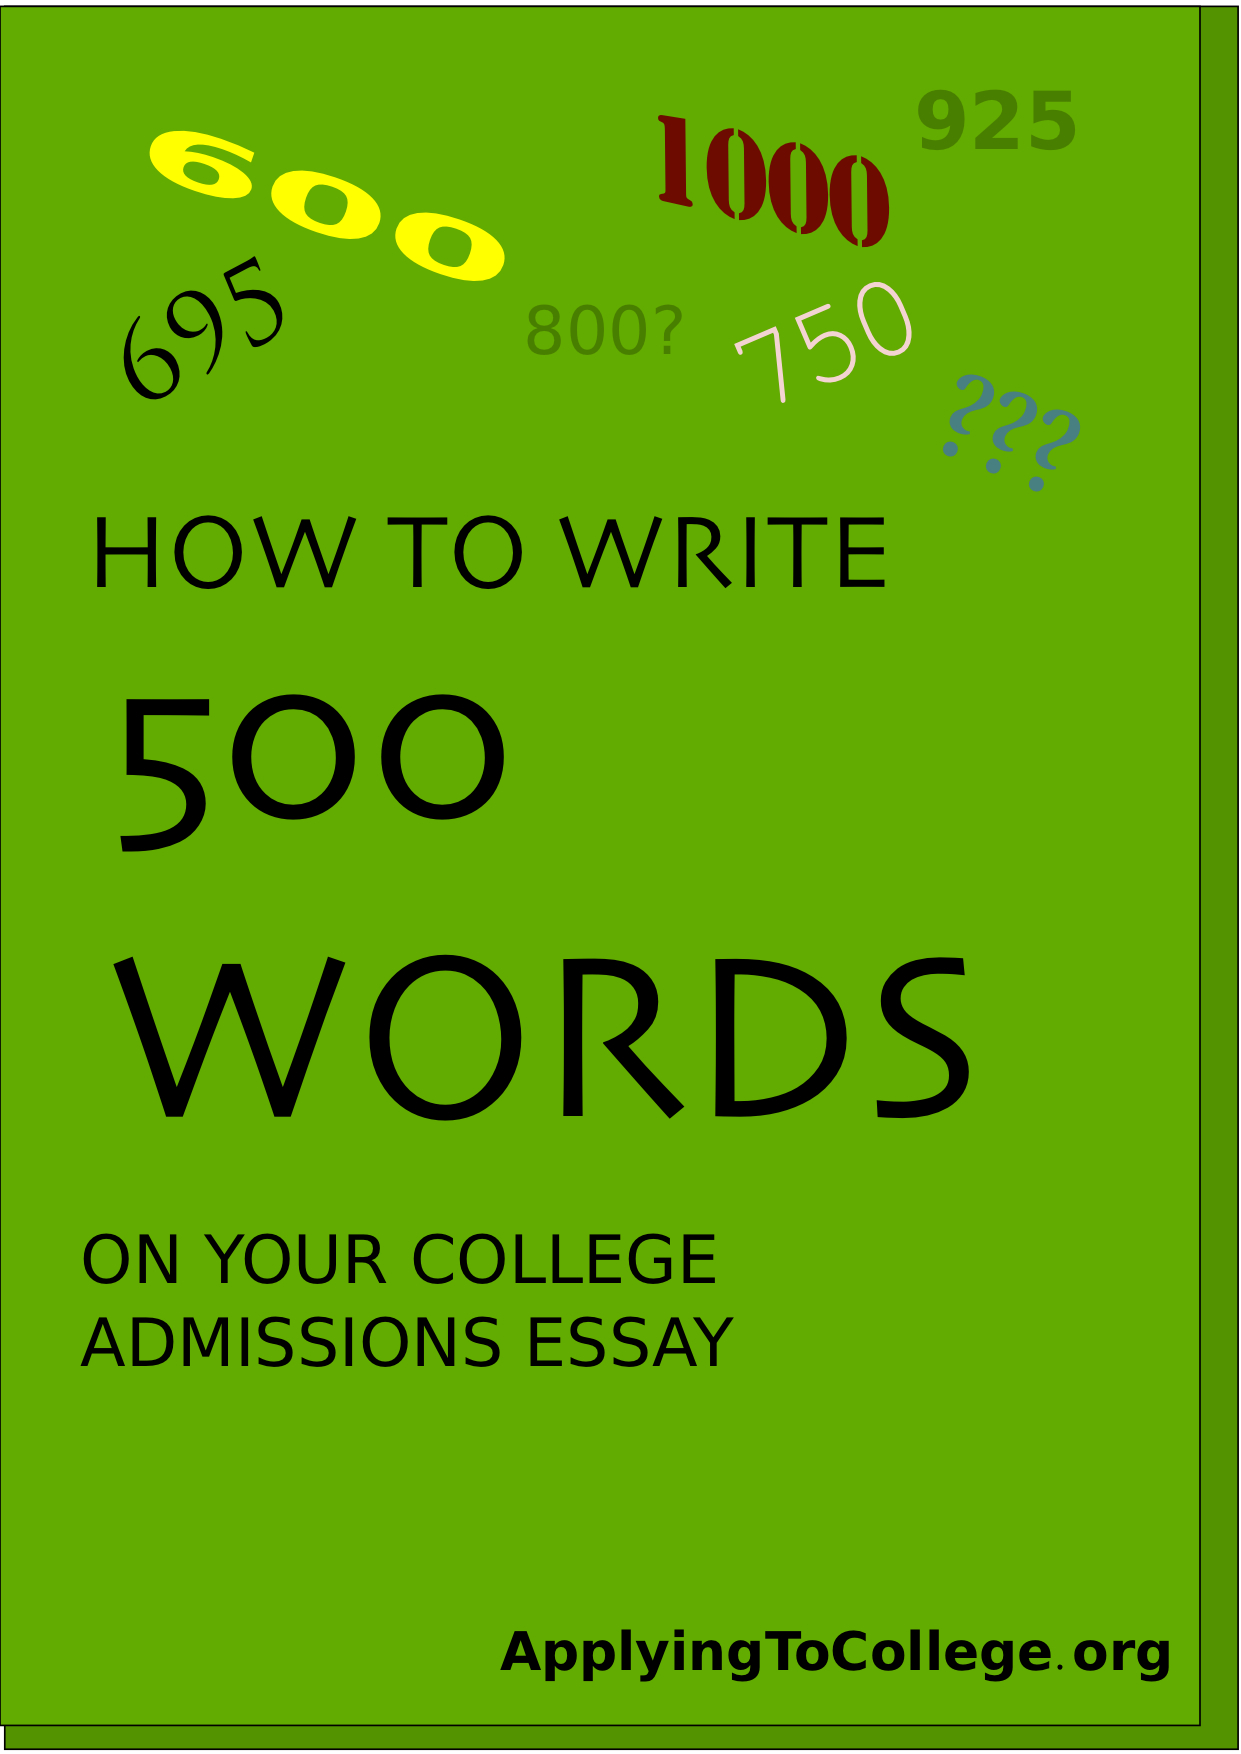 definitive essay 500 words A definition essay requires you to write your own definition of a word the definition must be thorough and well supported by research and evidence you may have to write a definition essay for a class or try it as a writing challenge to help improve your english skills start by selecting and defining the word.